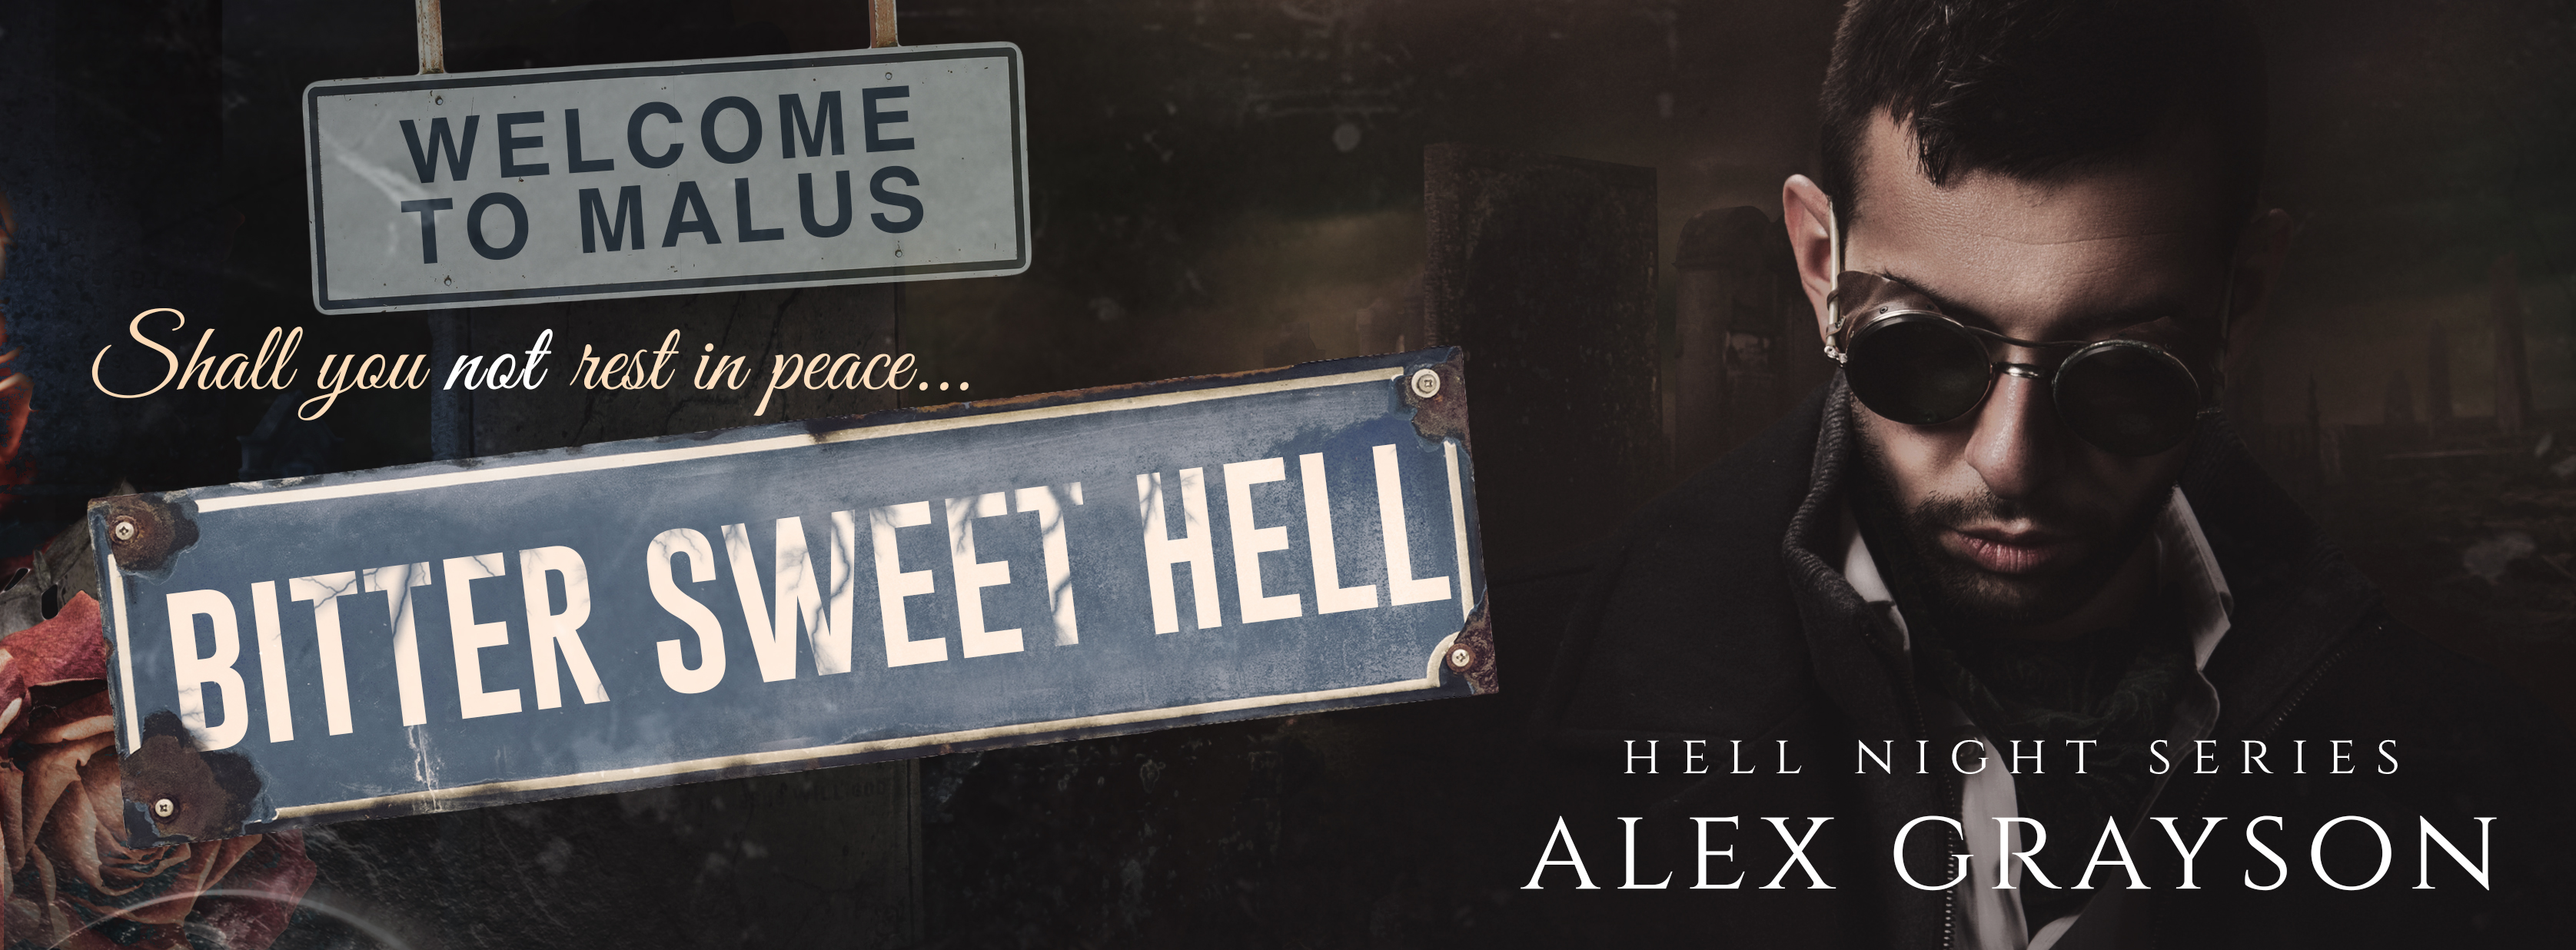 BITTER SWEET HELL by Alex Grayson – Cover Reveal